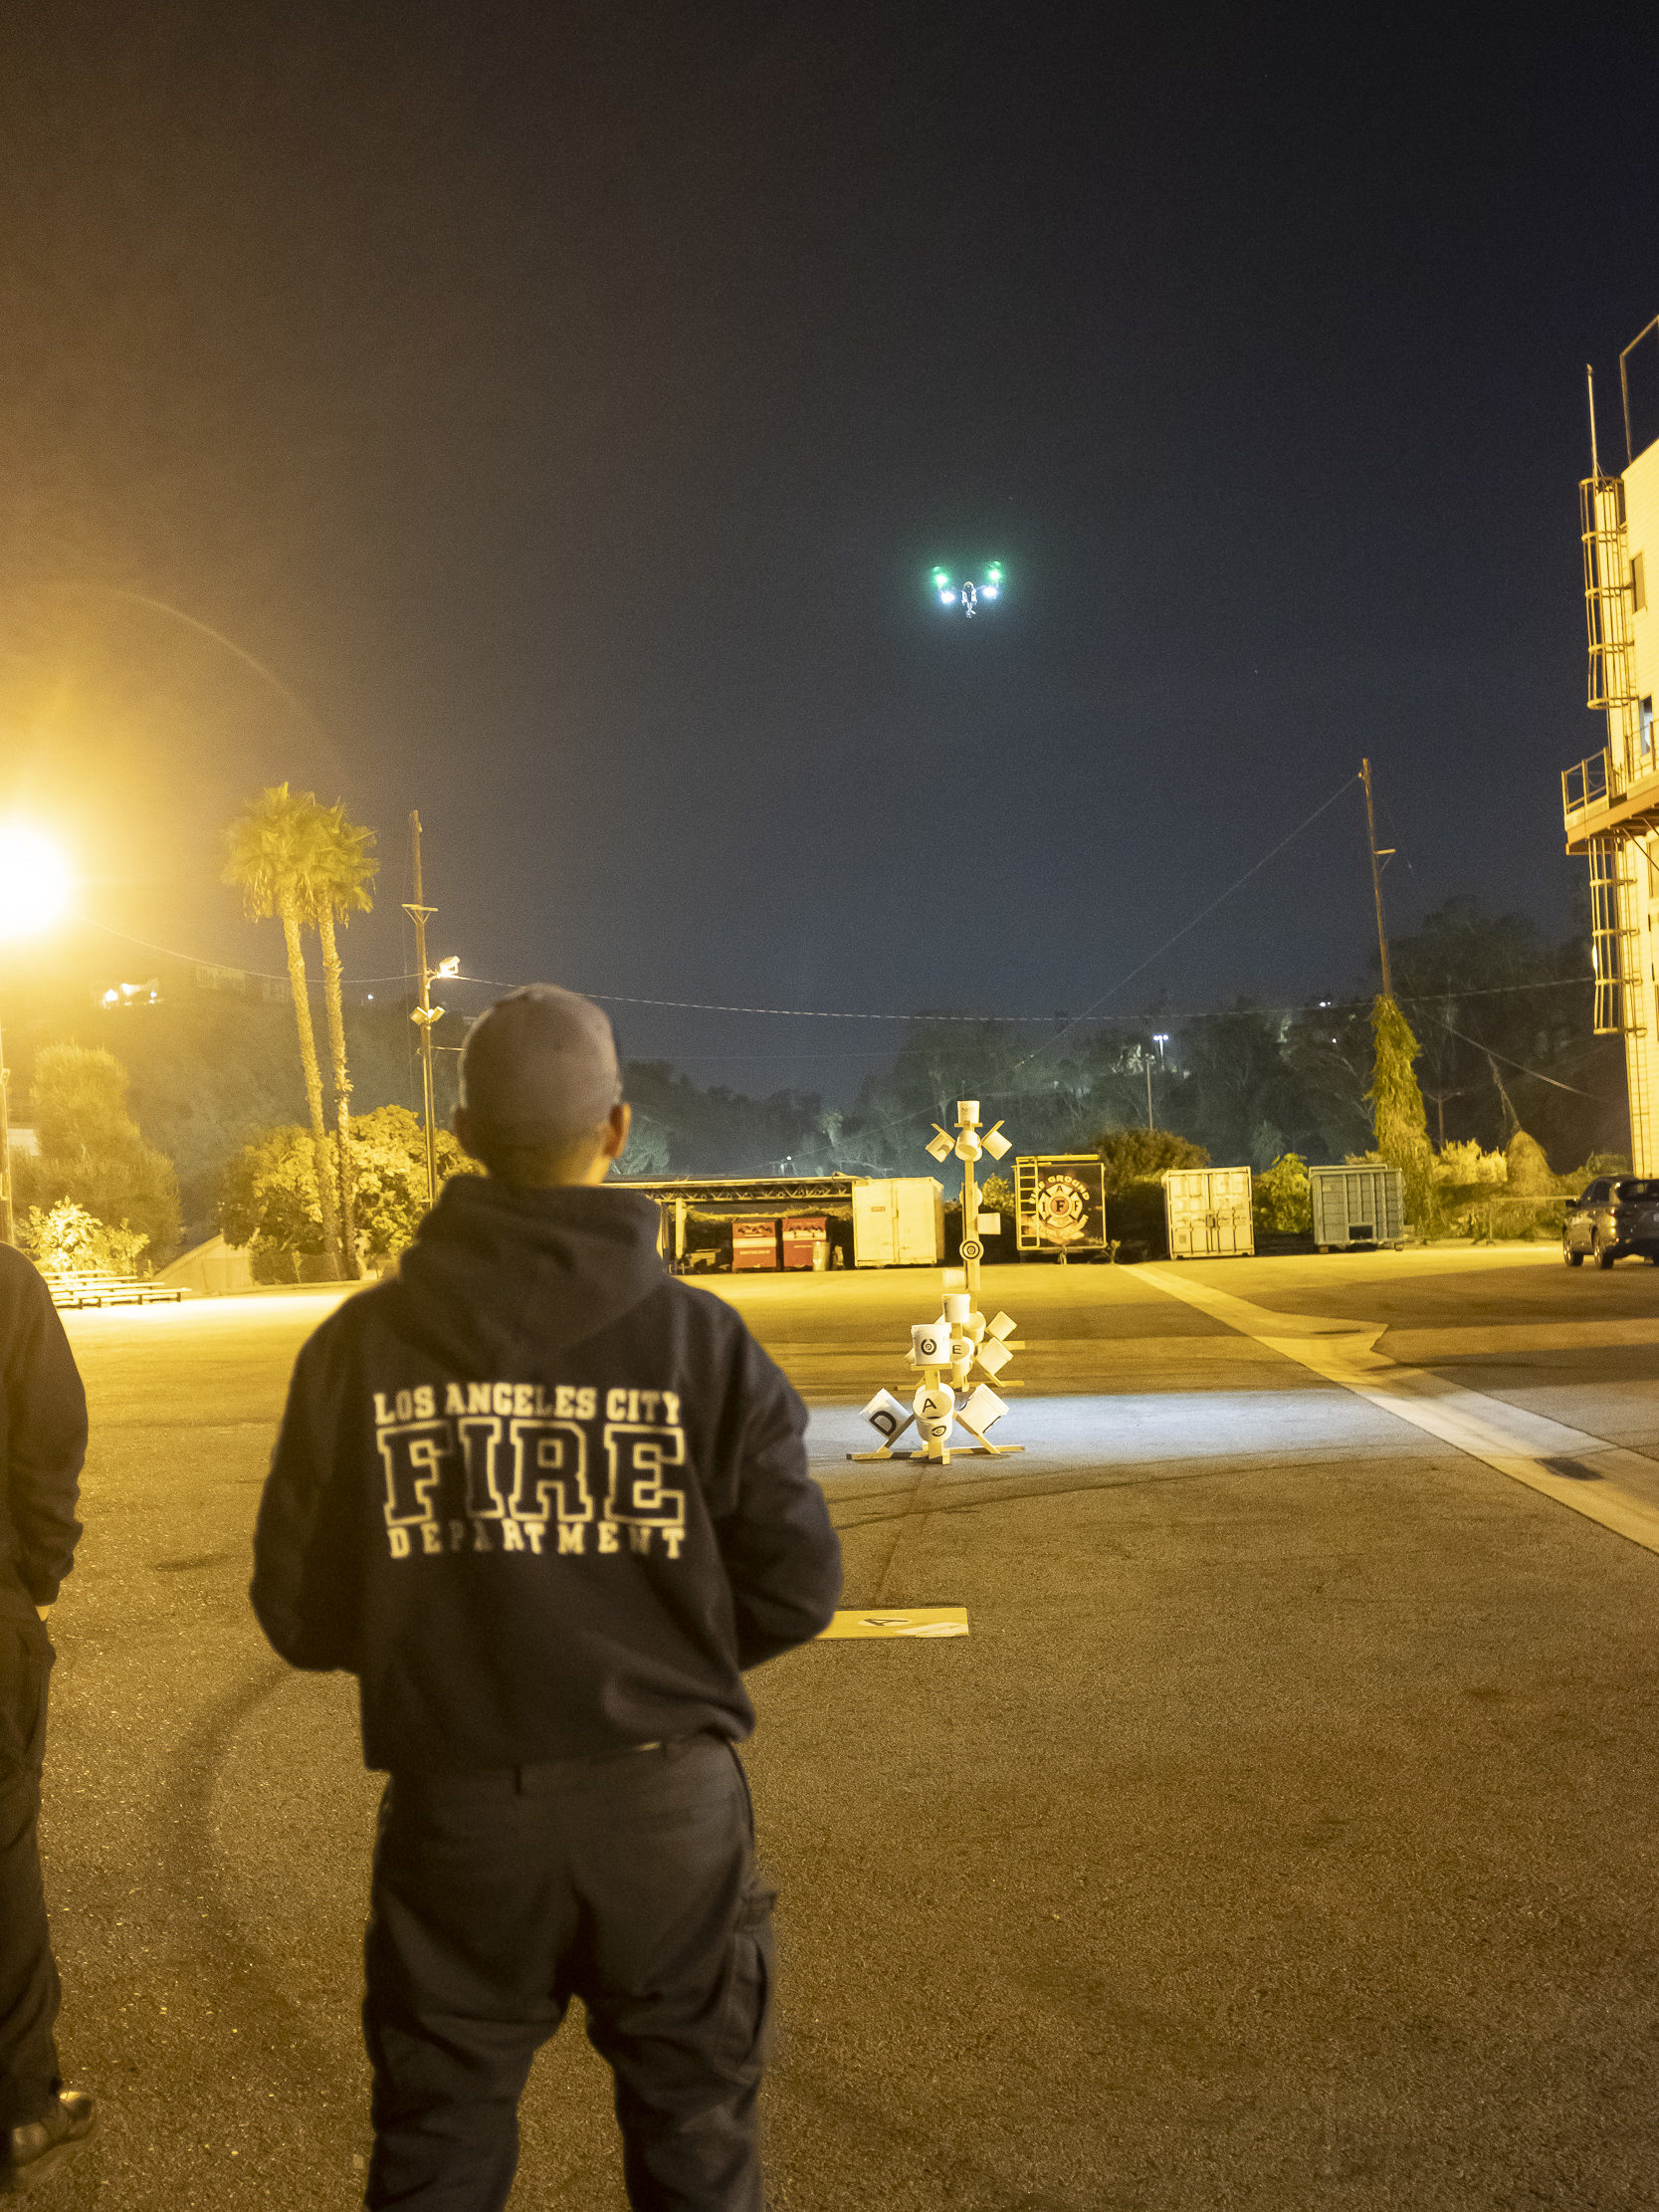 LAFD pilot practices NIST UAV training maneuvers with lights